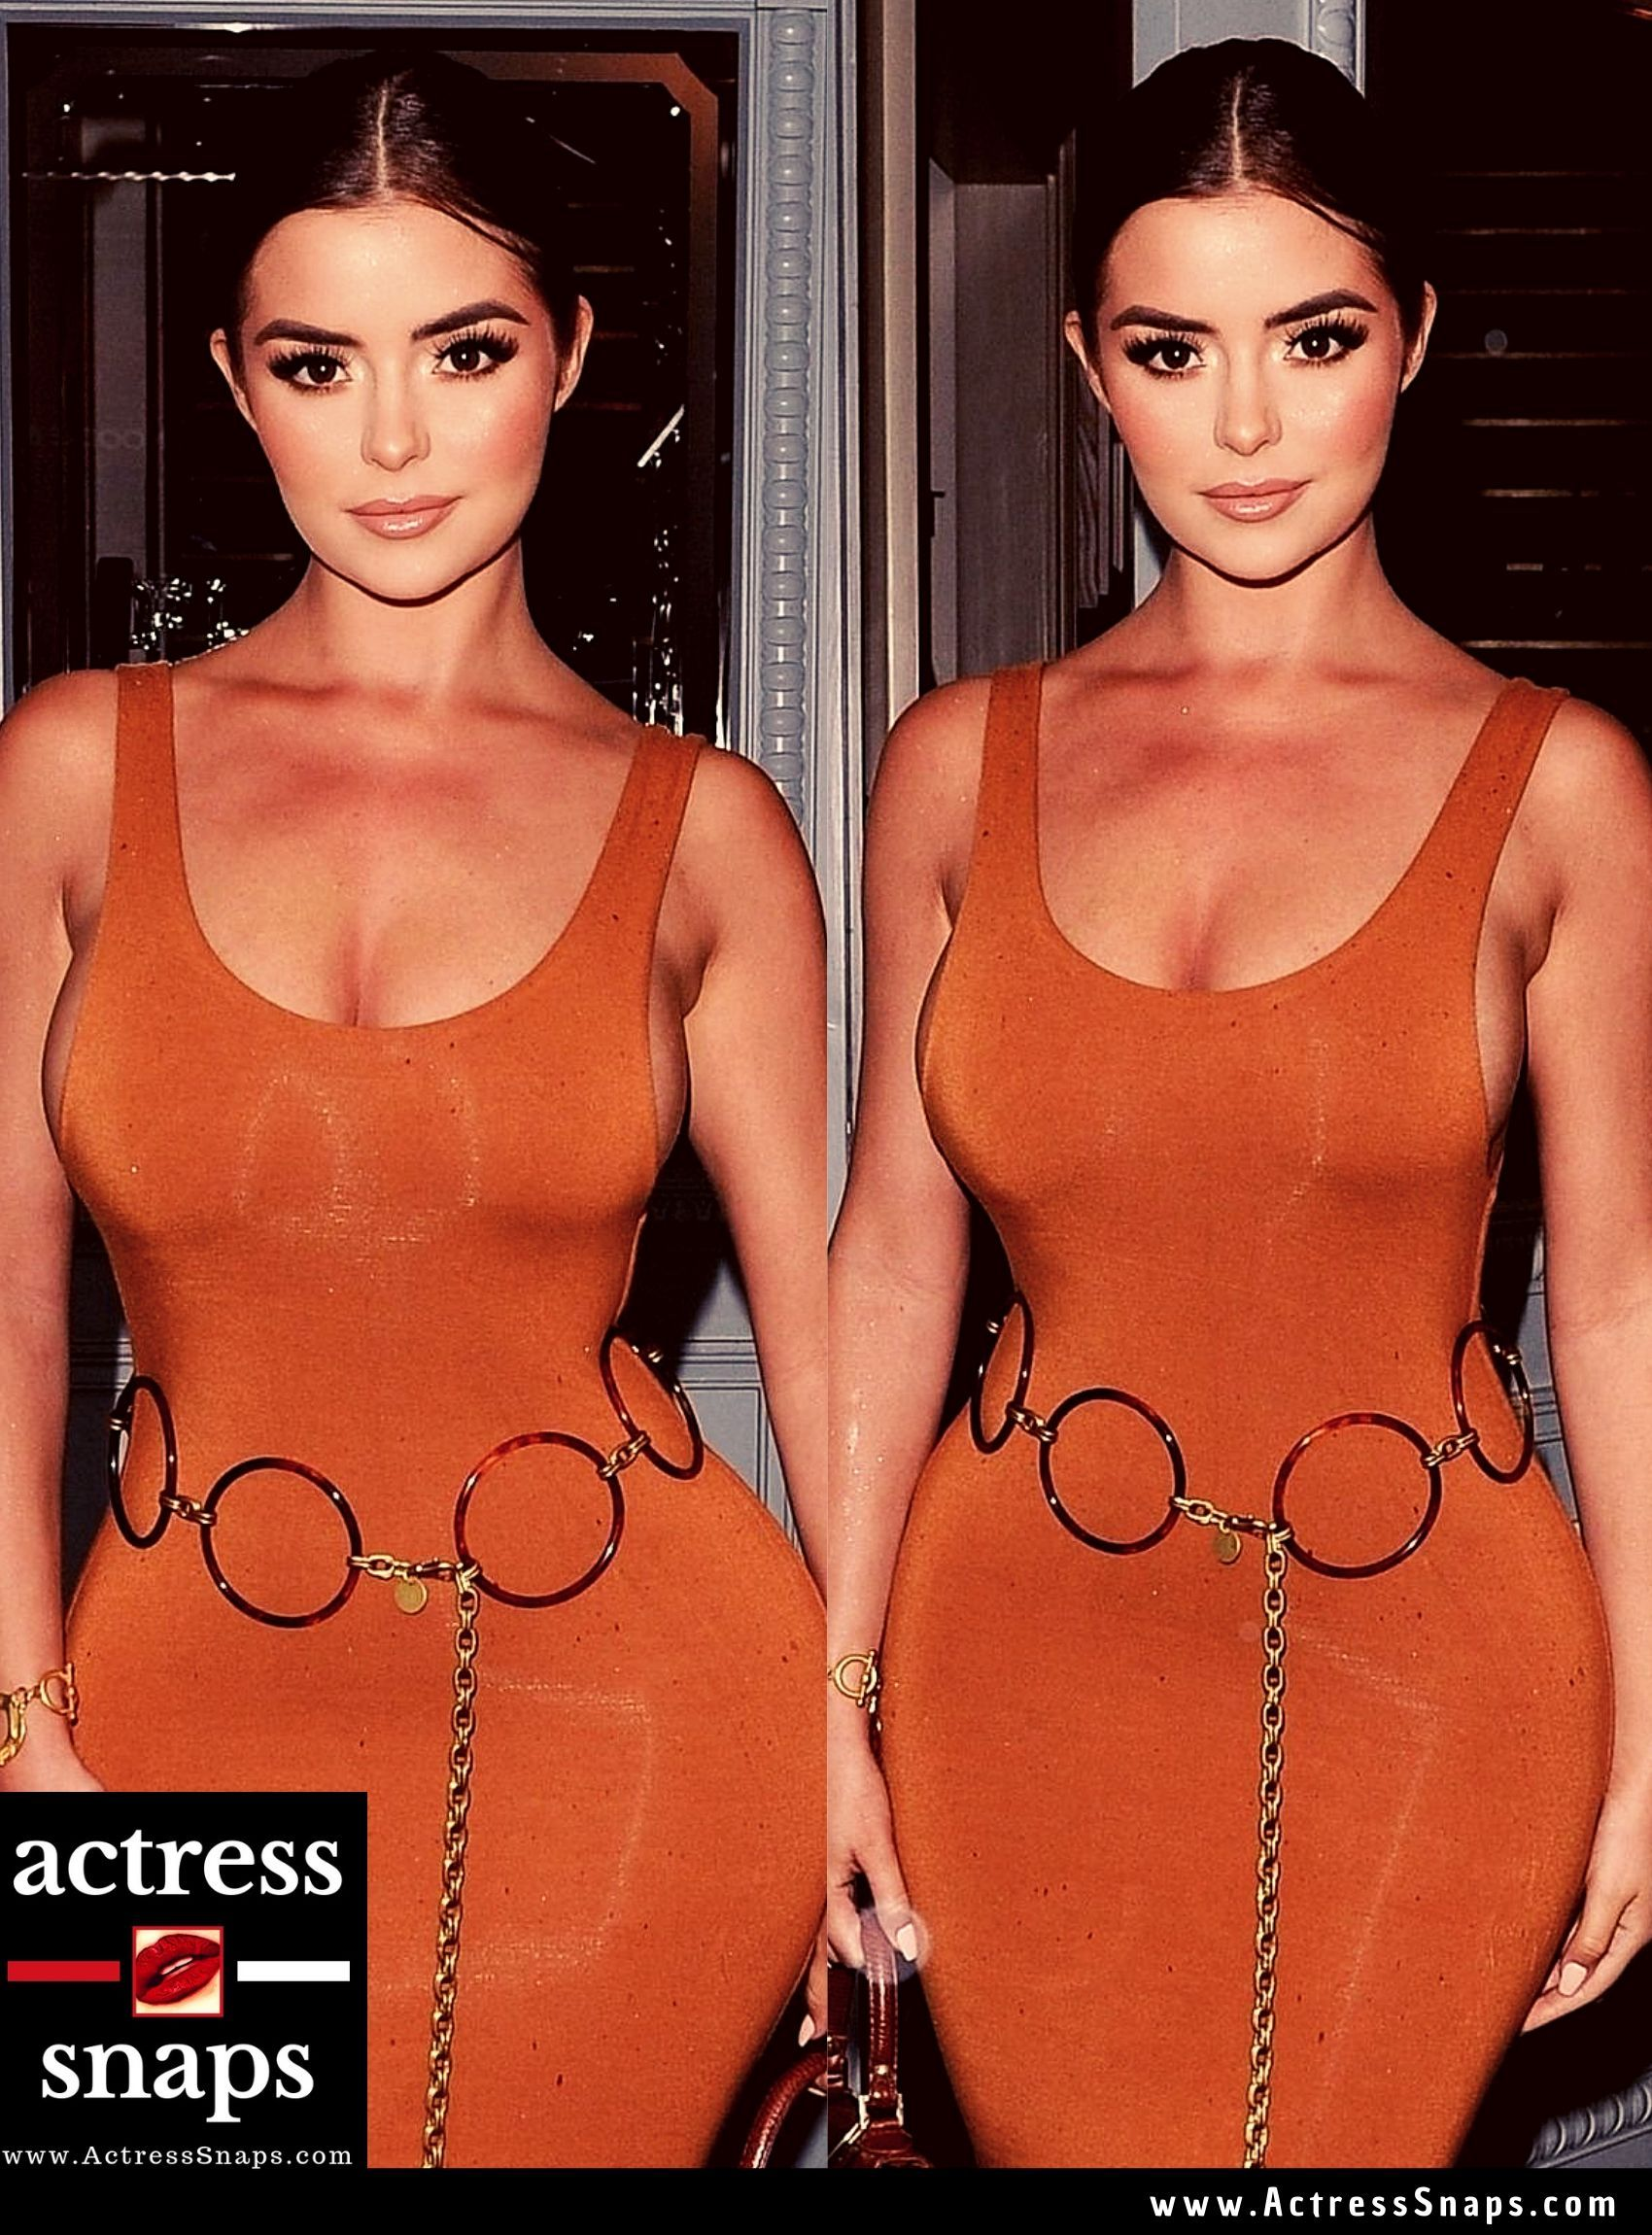 Demi Rose Mawby - Latest Candid Photos - Sexy Actress Pictures | Hot Actress Pictures - ActressSnaps.com